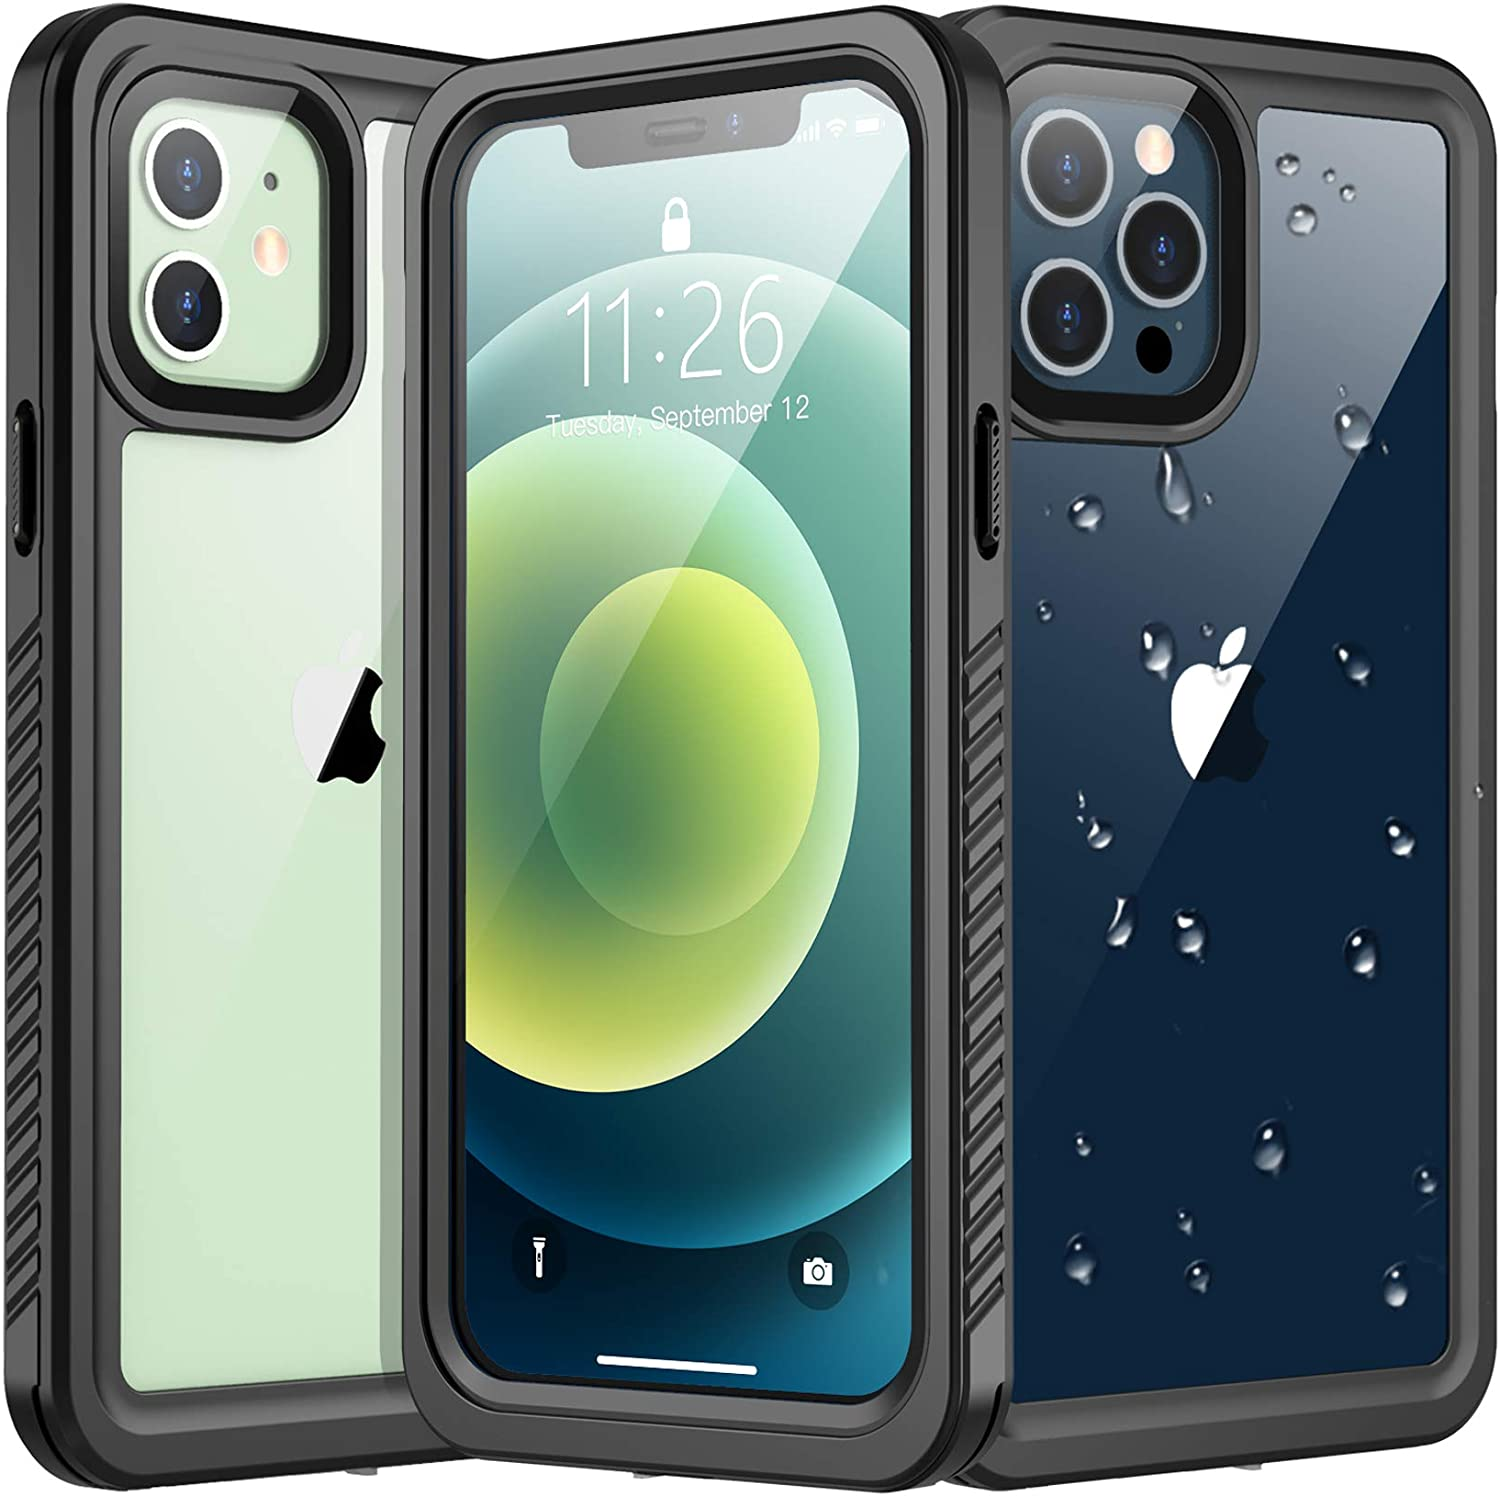 Vapesoon Designed for iPhone 12 Case,for iPhone 12 Pro Case, Waterproof Full Body with Built-in Screen Protector Rugged Clear Case for iPhone 12, for iPhone 12 Pro (Black/Clear)